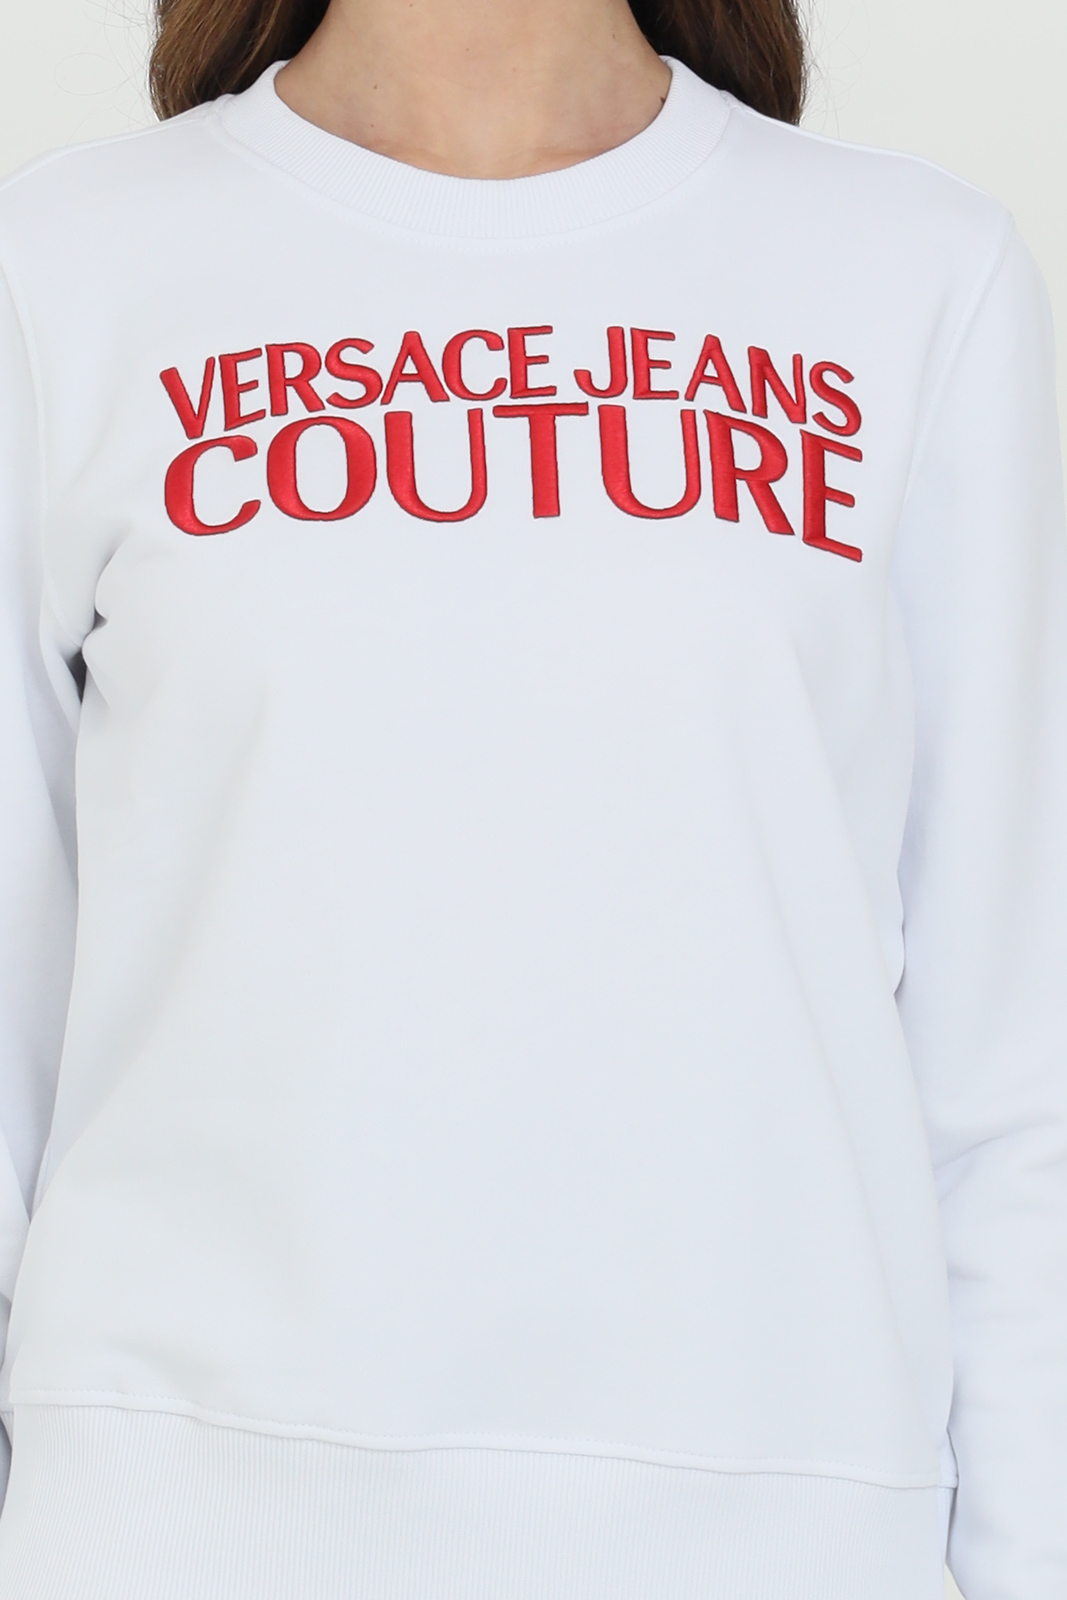 Felpa donna bianca versace jeans couture girocollo con logo ricamato frontale in rosso VERSACE JEANS COUTURE | Felpe | B6HWA7TS30318003